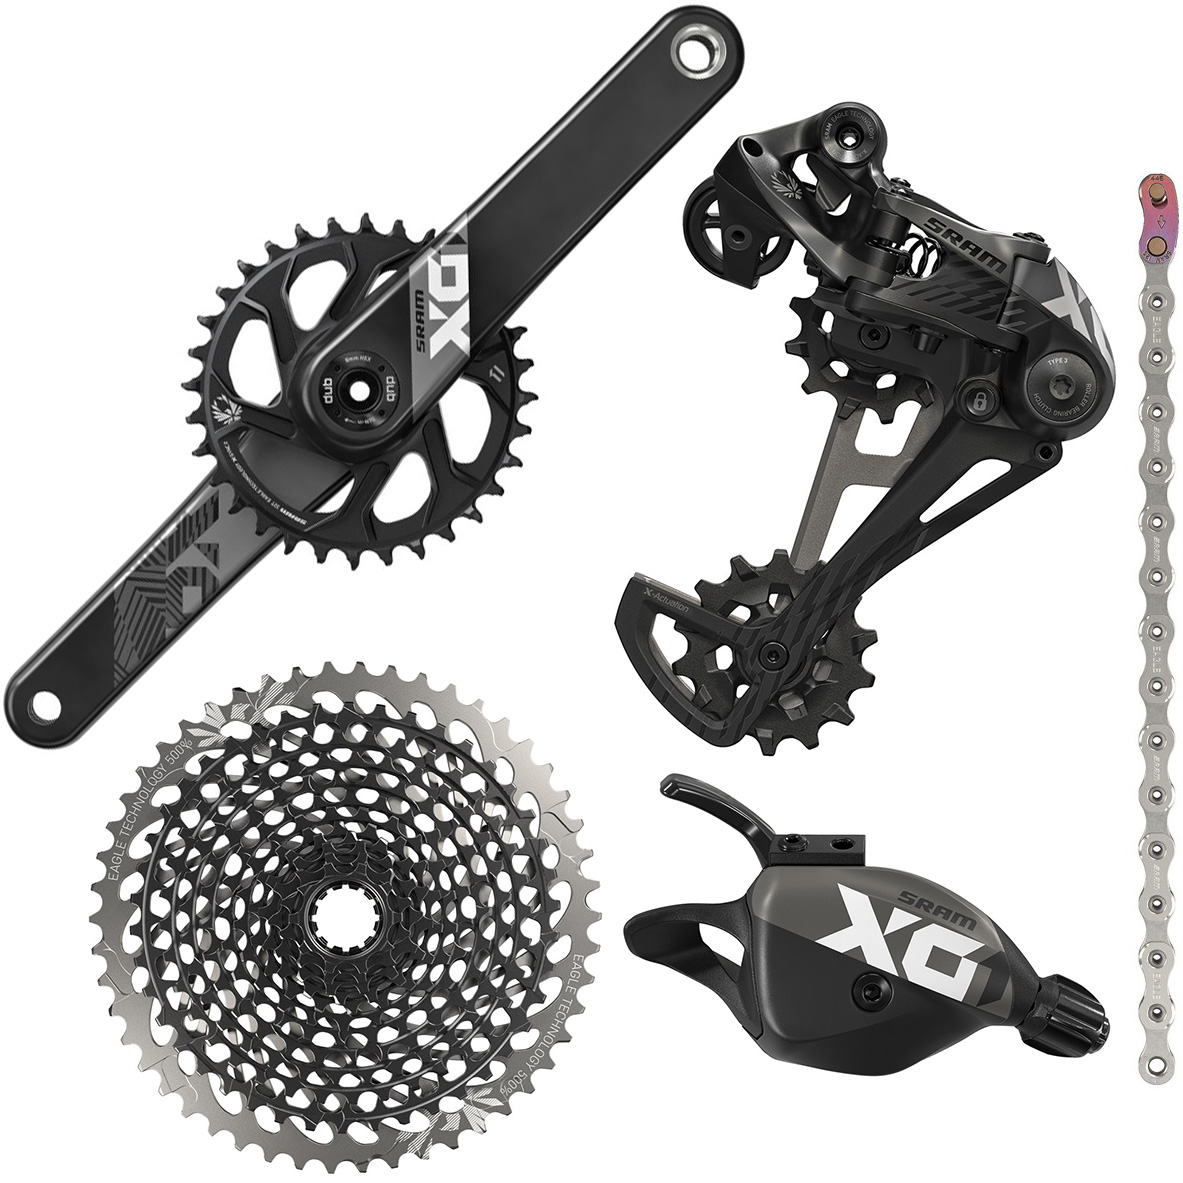 SRAM X01 12sp Eagle DUB Groupset | Groupsets